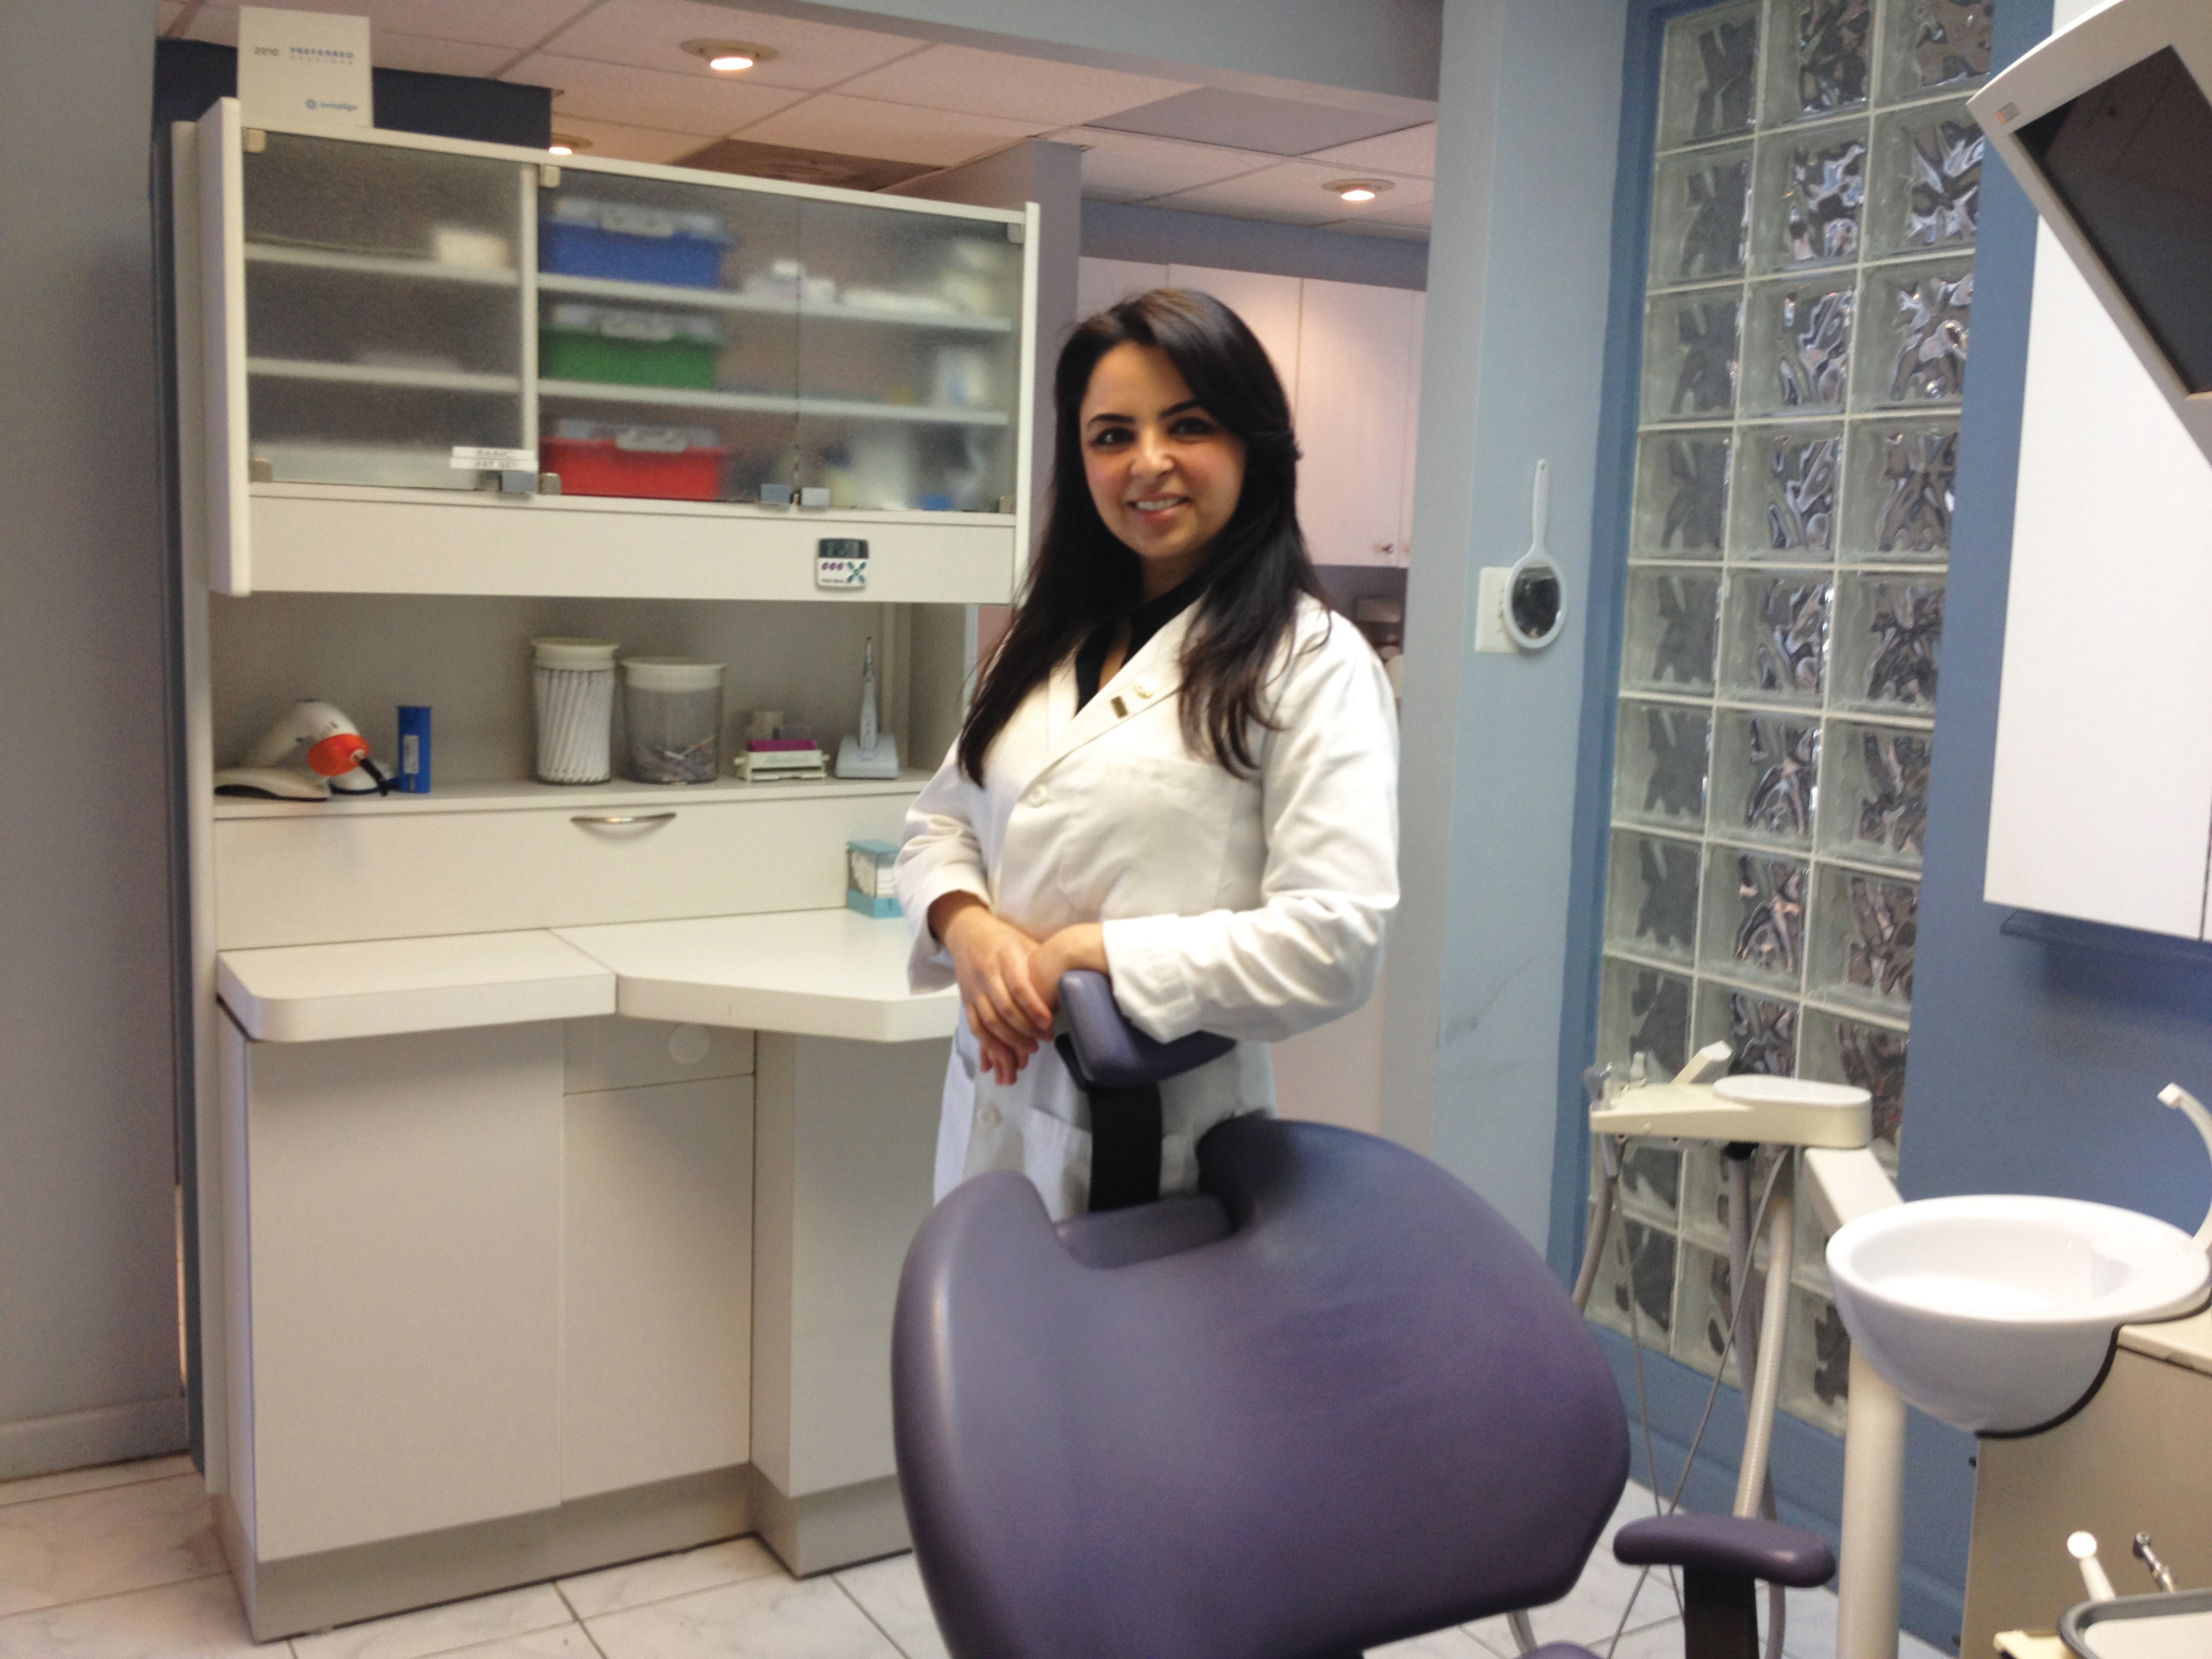 Dr. Melody Adhoot, new owner of Metropolitan Smiles in Kew Gardens